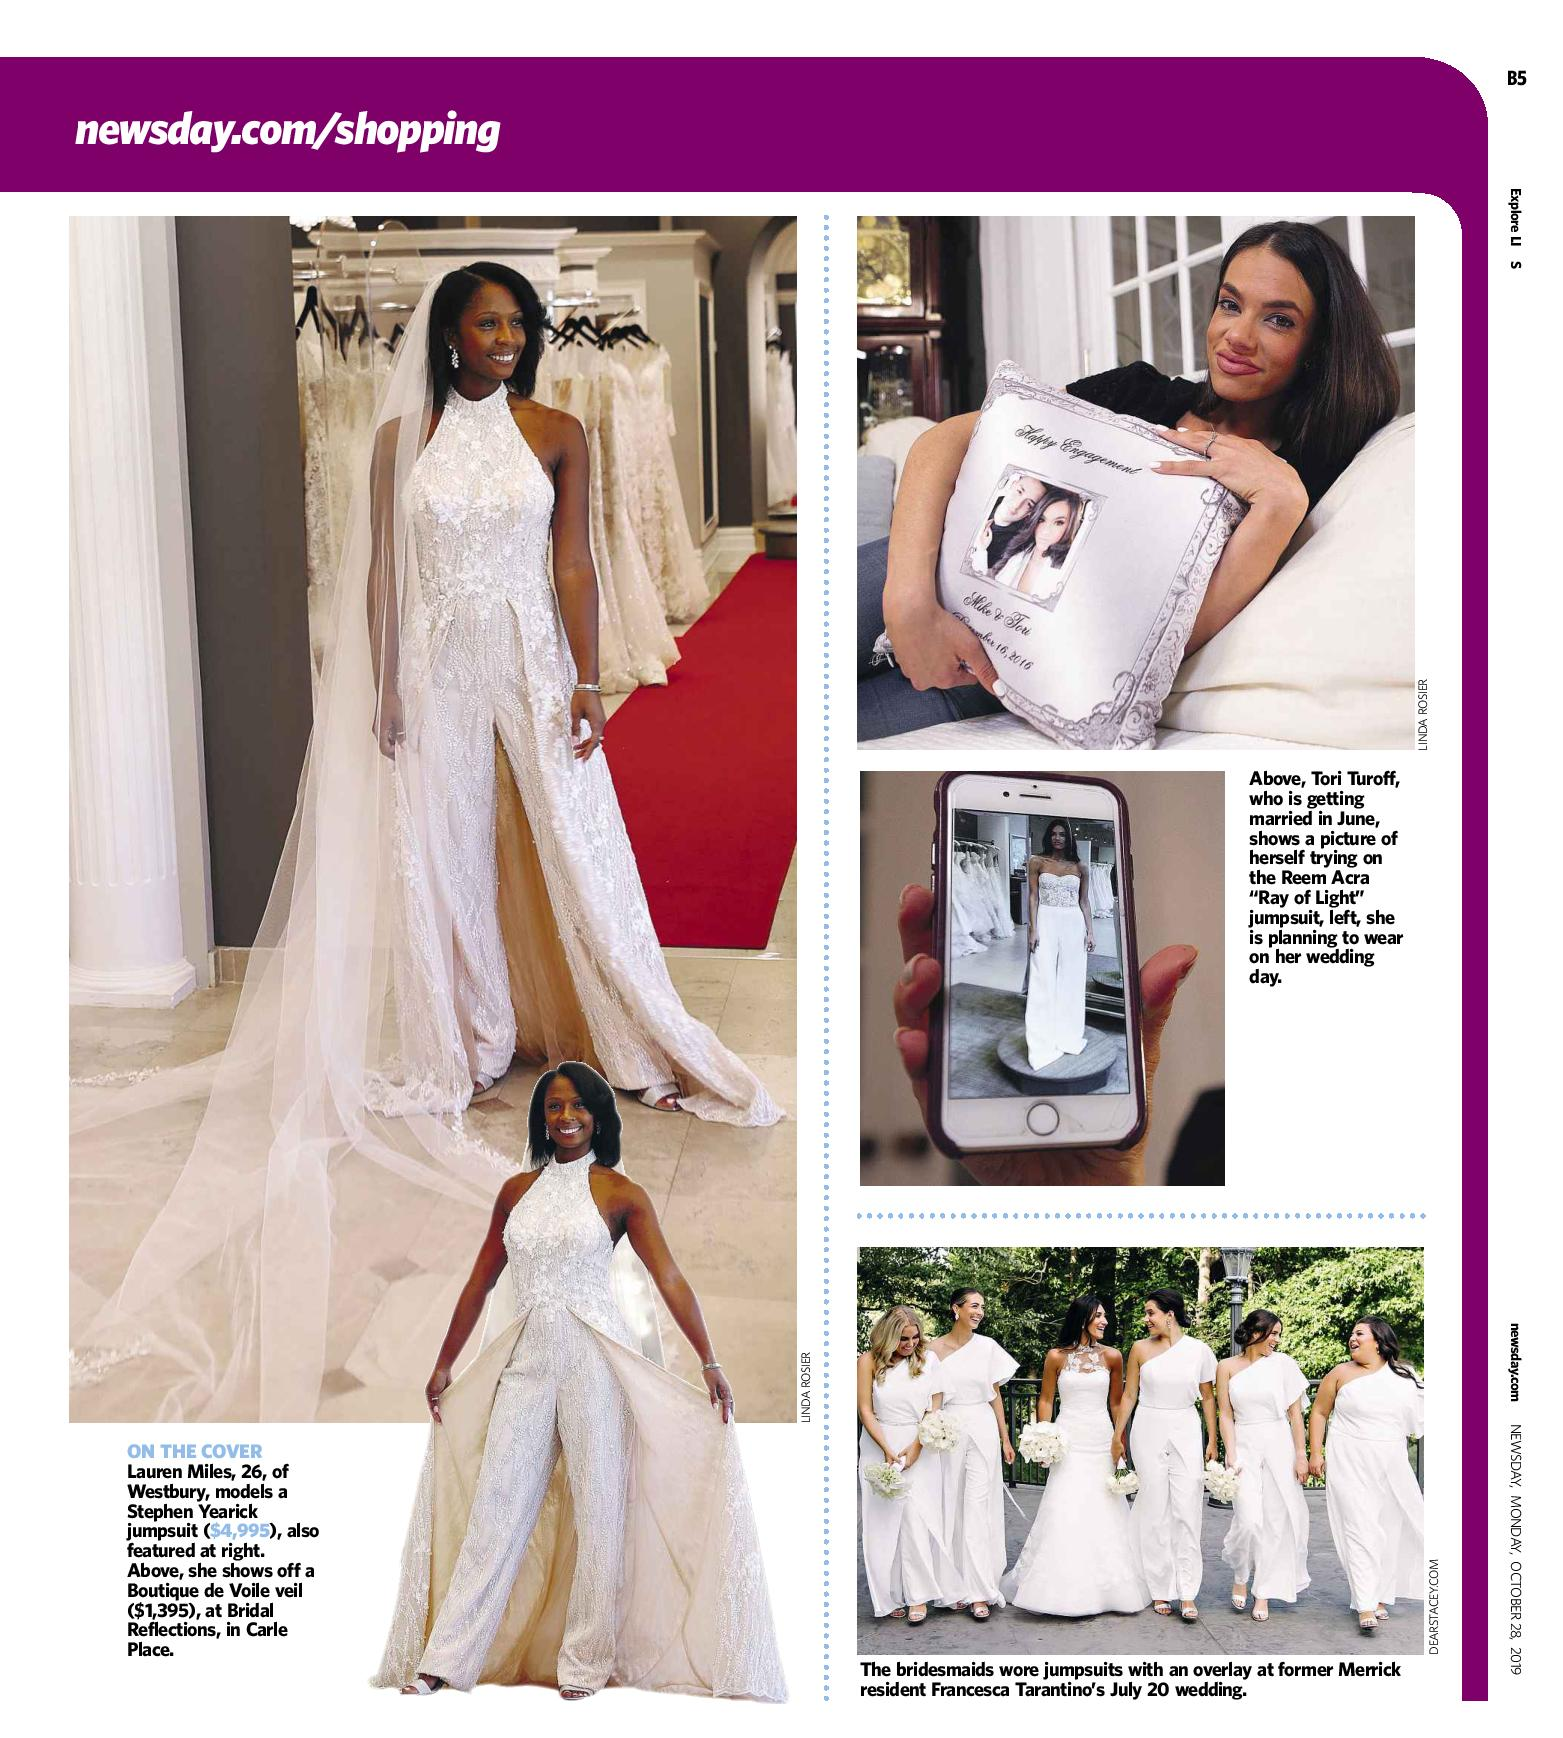 And the Bride Wore Pants page 3 - Stephen Yearick jumpsuit